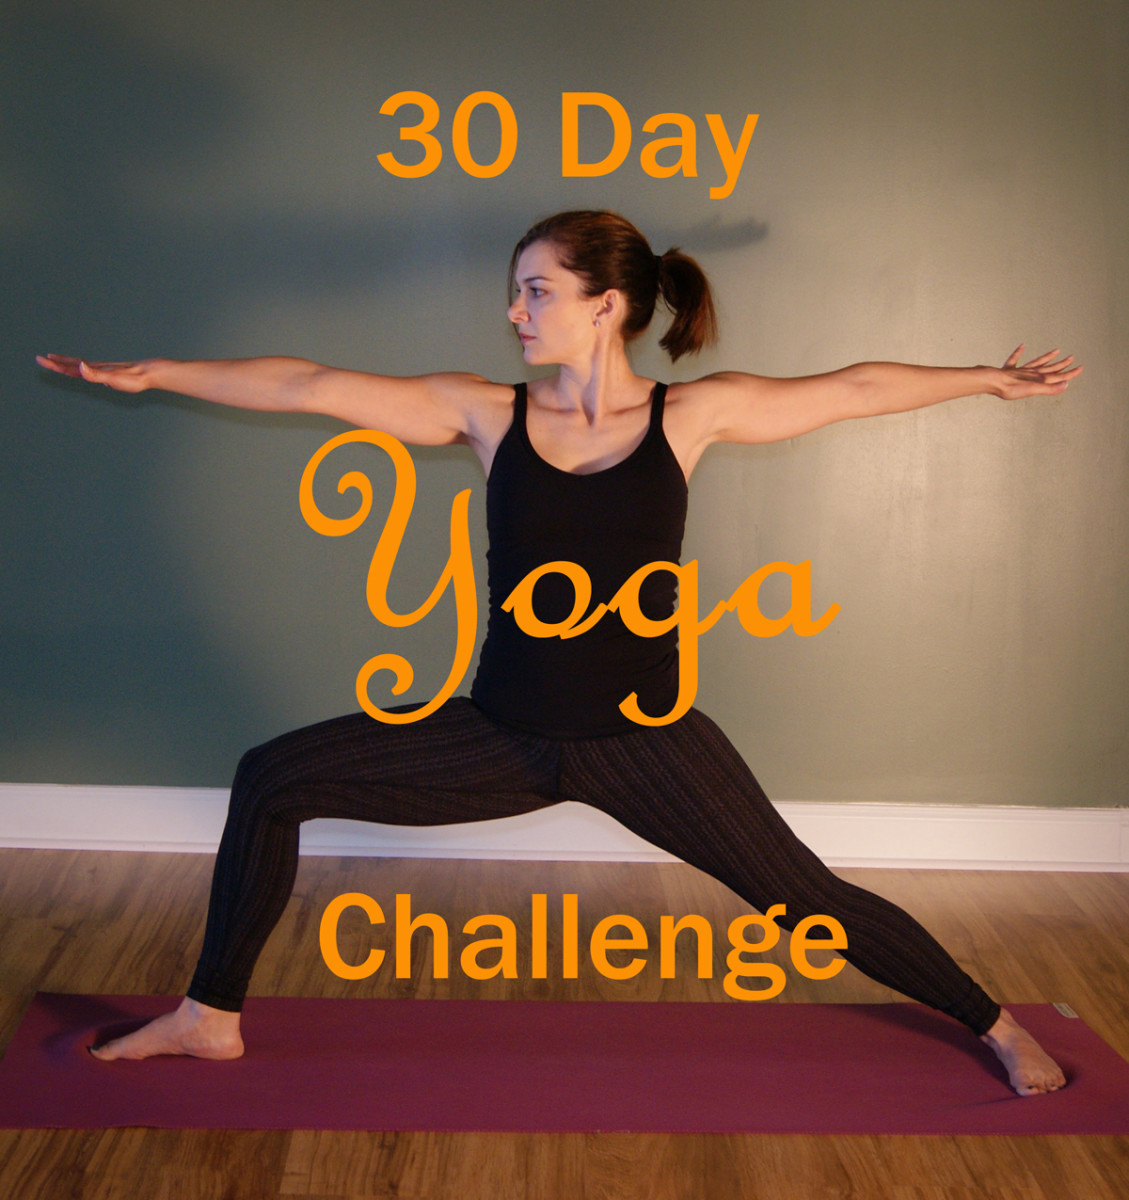 Practicing Yoga at Home - A 30 Day Yoga Challenge